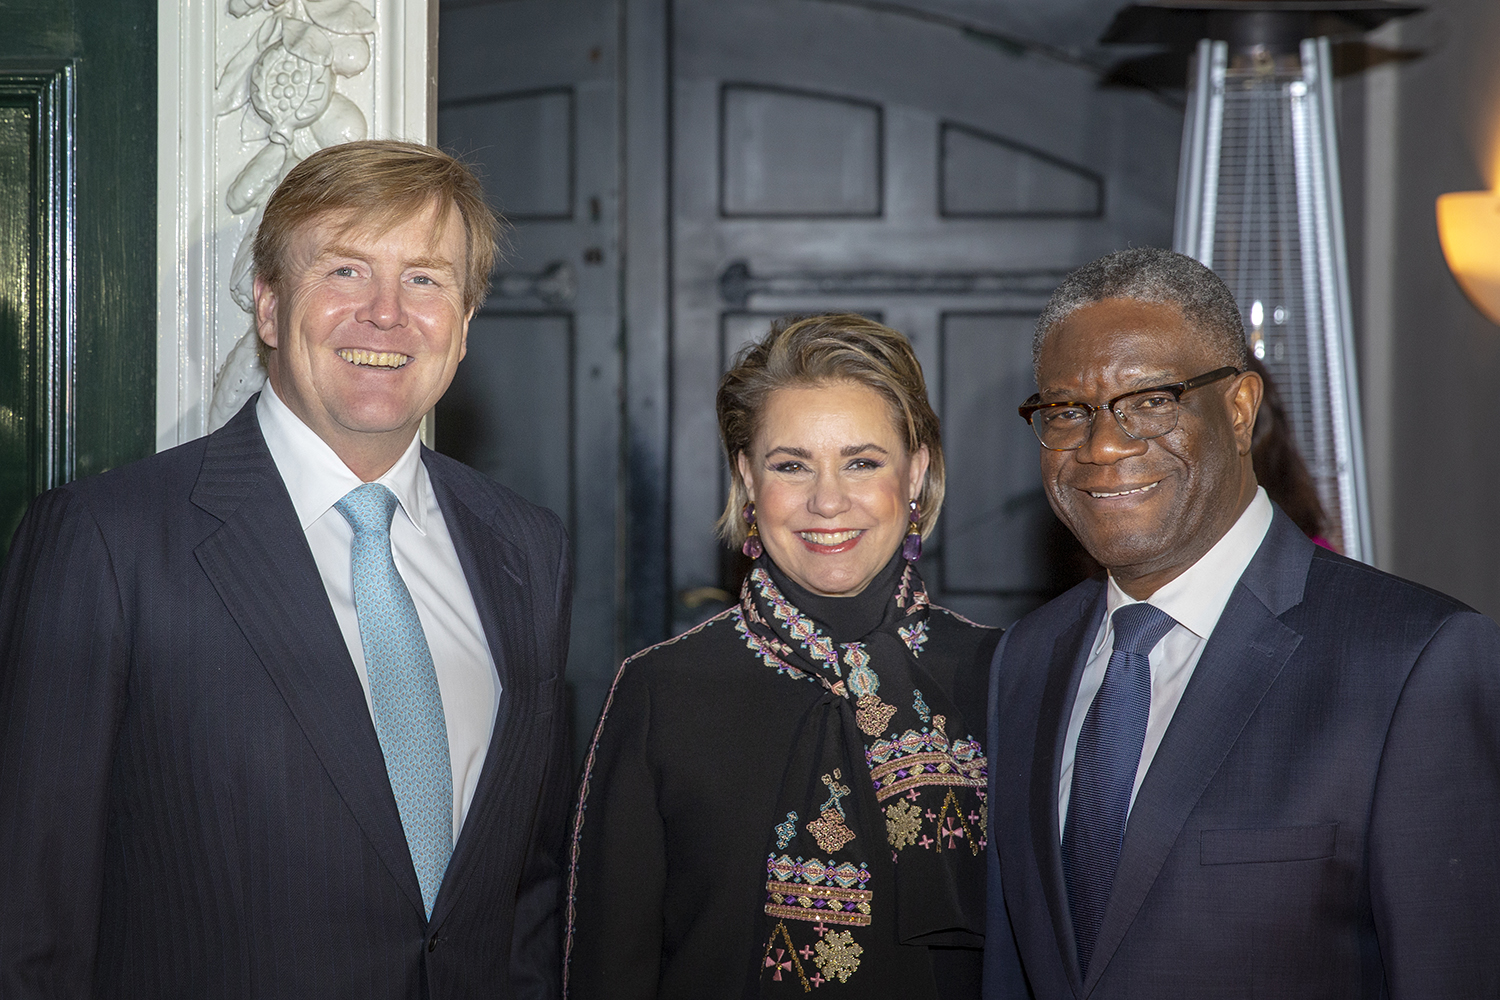 King Willem-Alexander meets dr. Denis Mukwege and wartime sexual violence survivors